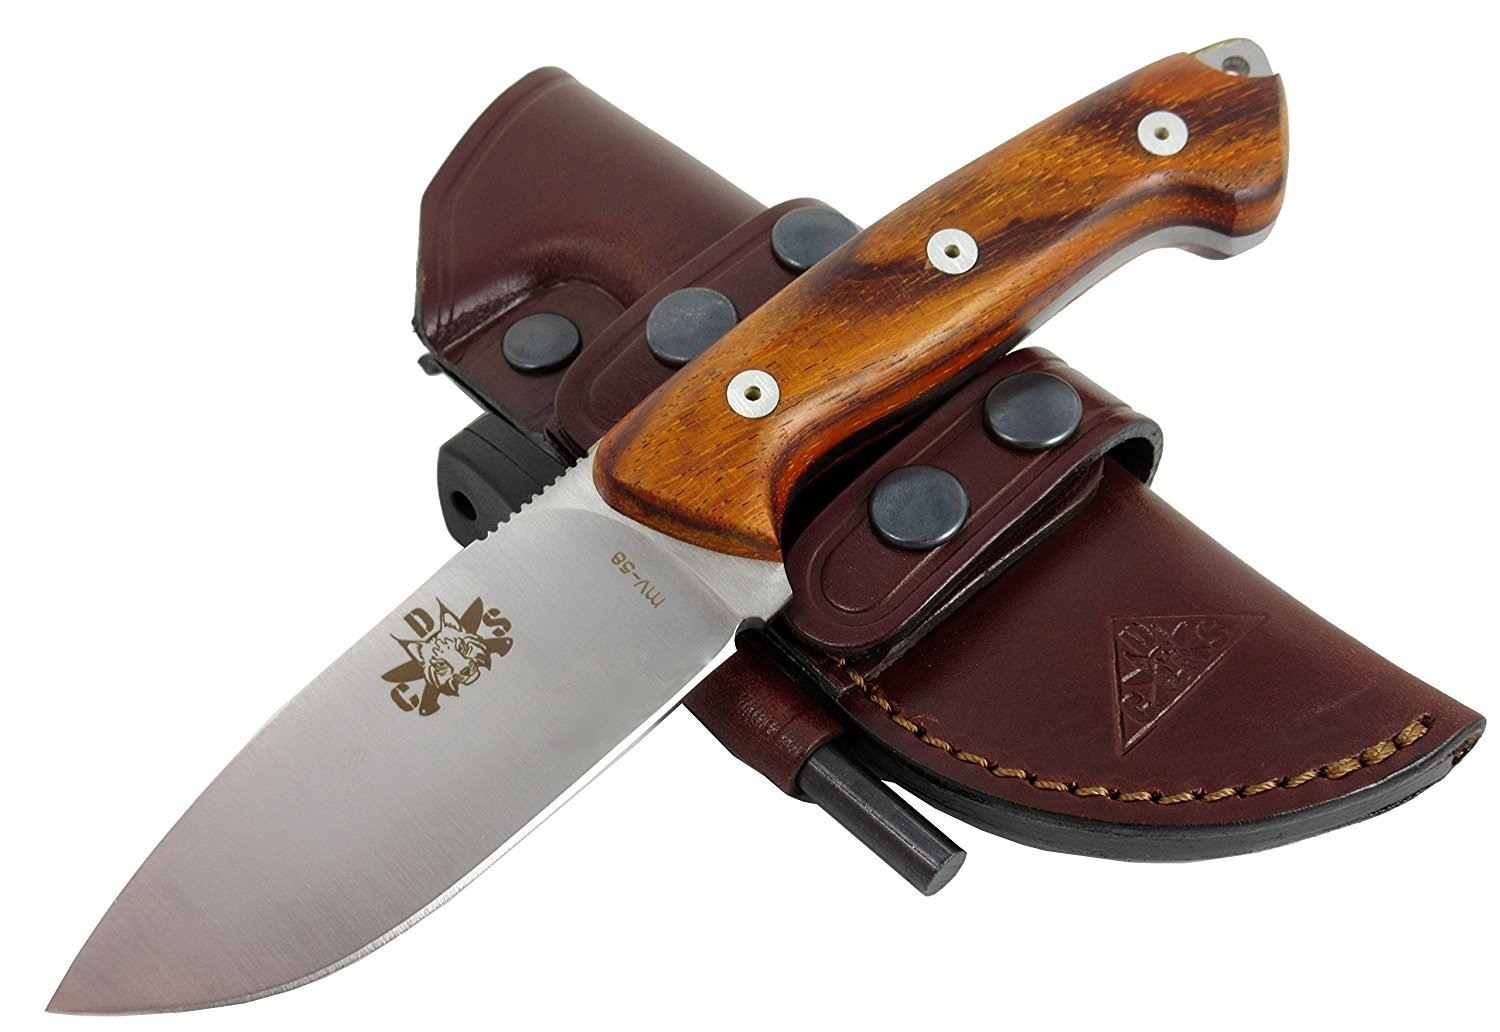 AXARQUIA-Coco - Premium Outdoor/Survival/Hunting/Tactical Knife - Cocobolo Exotic Wood Handle - Stainless Steel MOVA-58, Genuine Leather Multi-Position Sheath + Firesteel. Made in Spain. by CDS-Survival (Image #1)